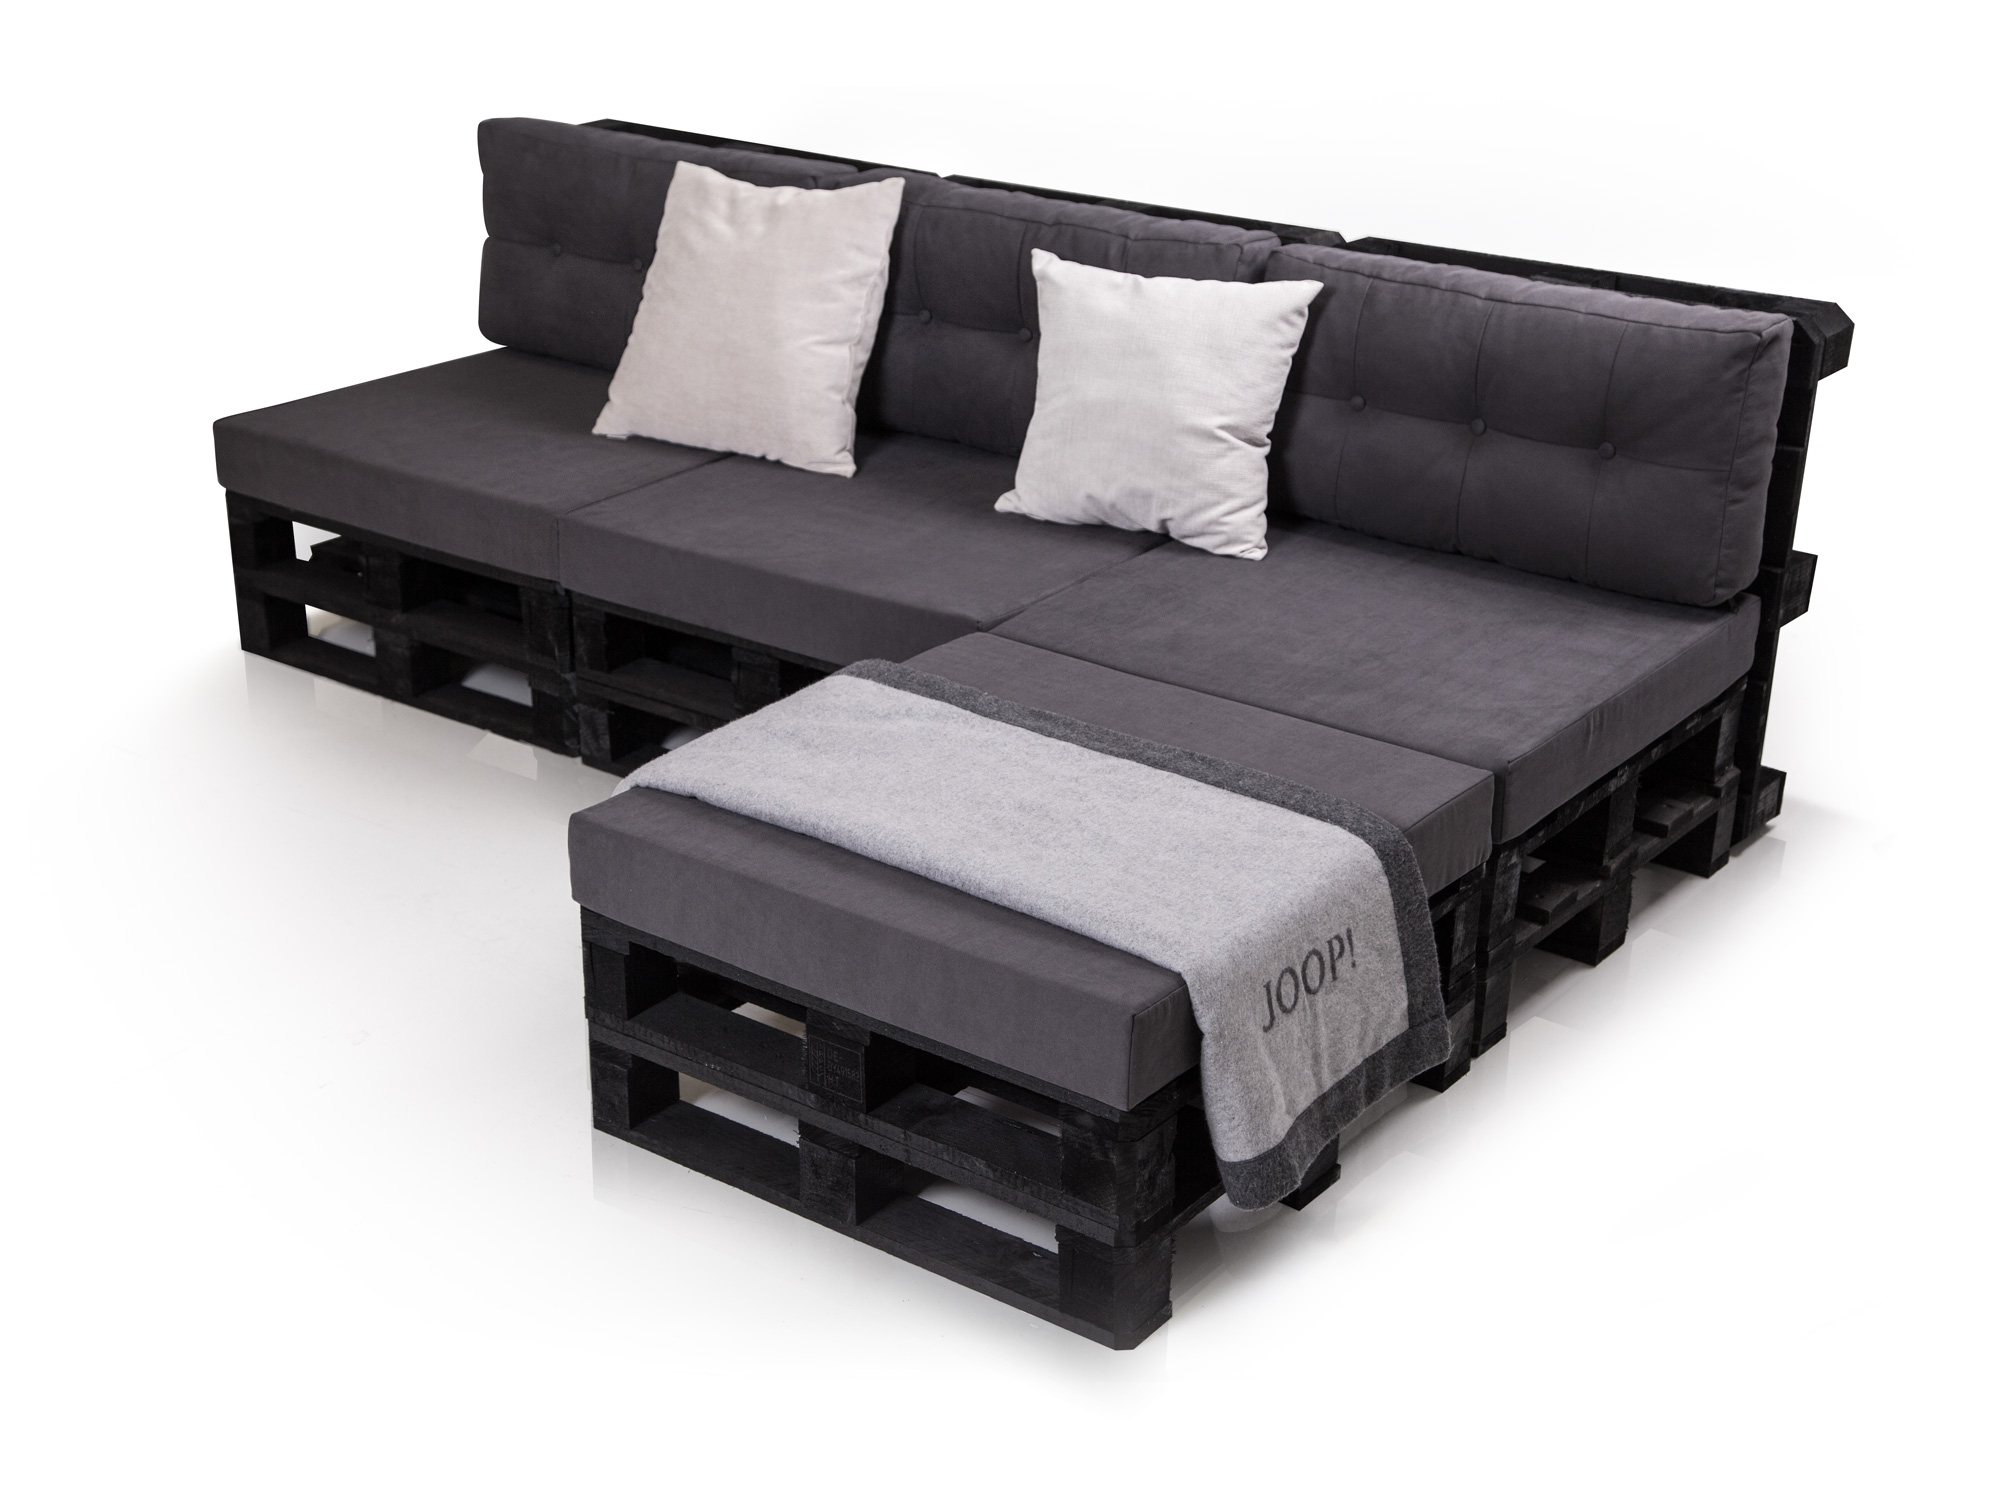 paletti 3 sitzer ecksofa sofa aus paletten fichte schwarz. Black Bedroom Furniture Sets. Home Design Ideas